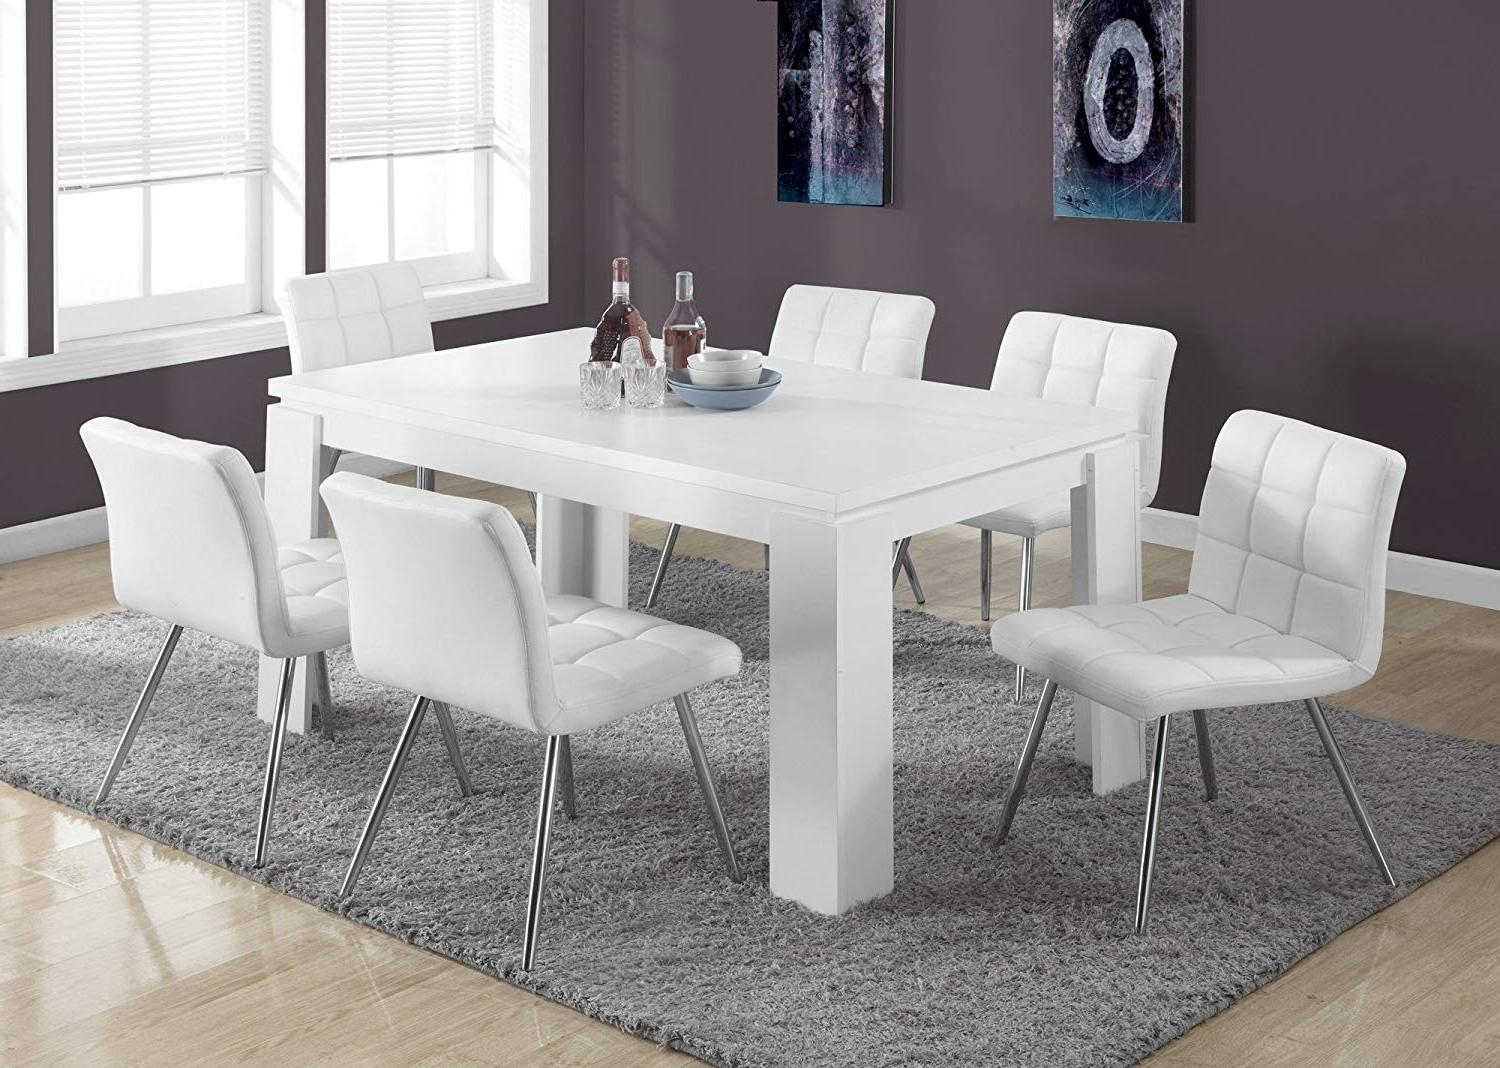 Well Known Amazon – Monarch Specialties I 1056, Dining Table, White Hollow Inside Dining Tables With White Legs (View 5 of 25)